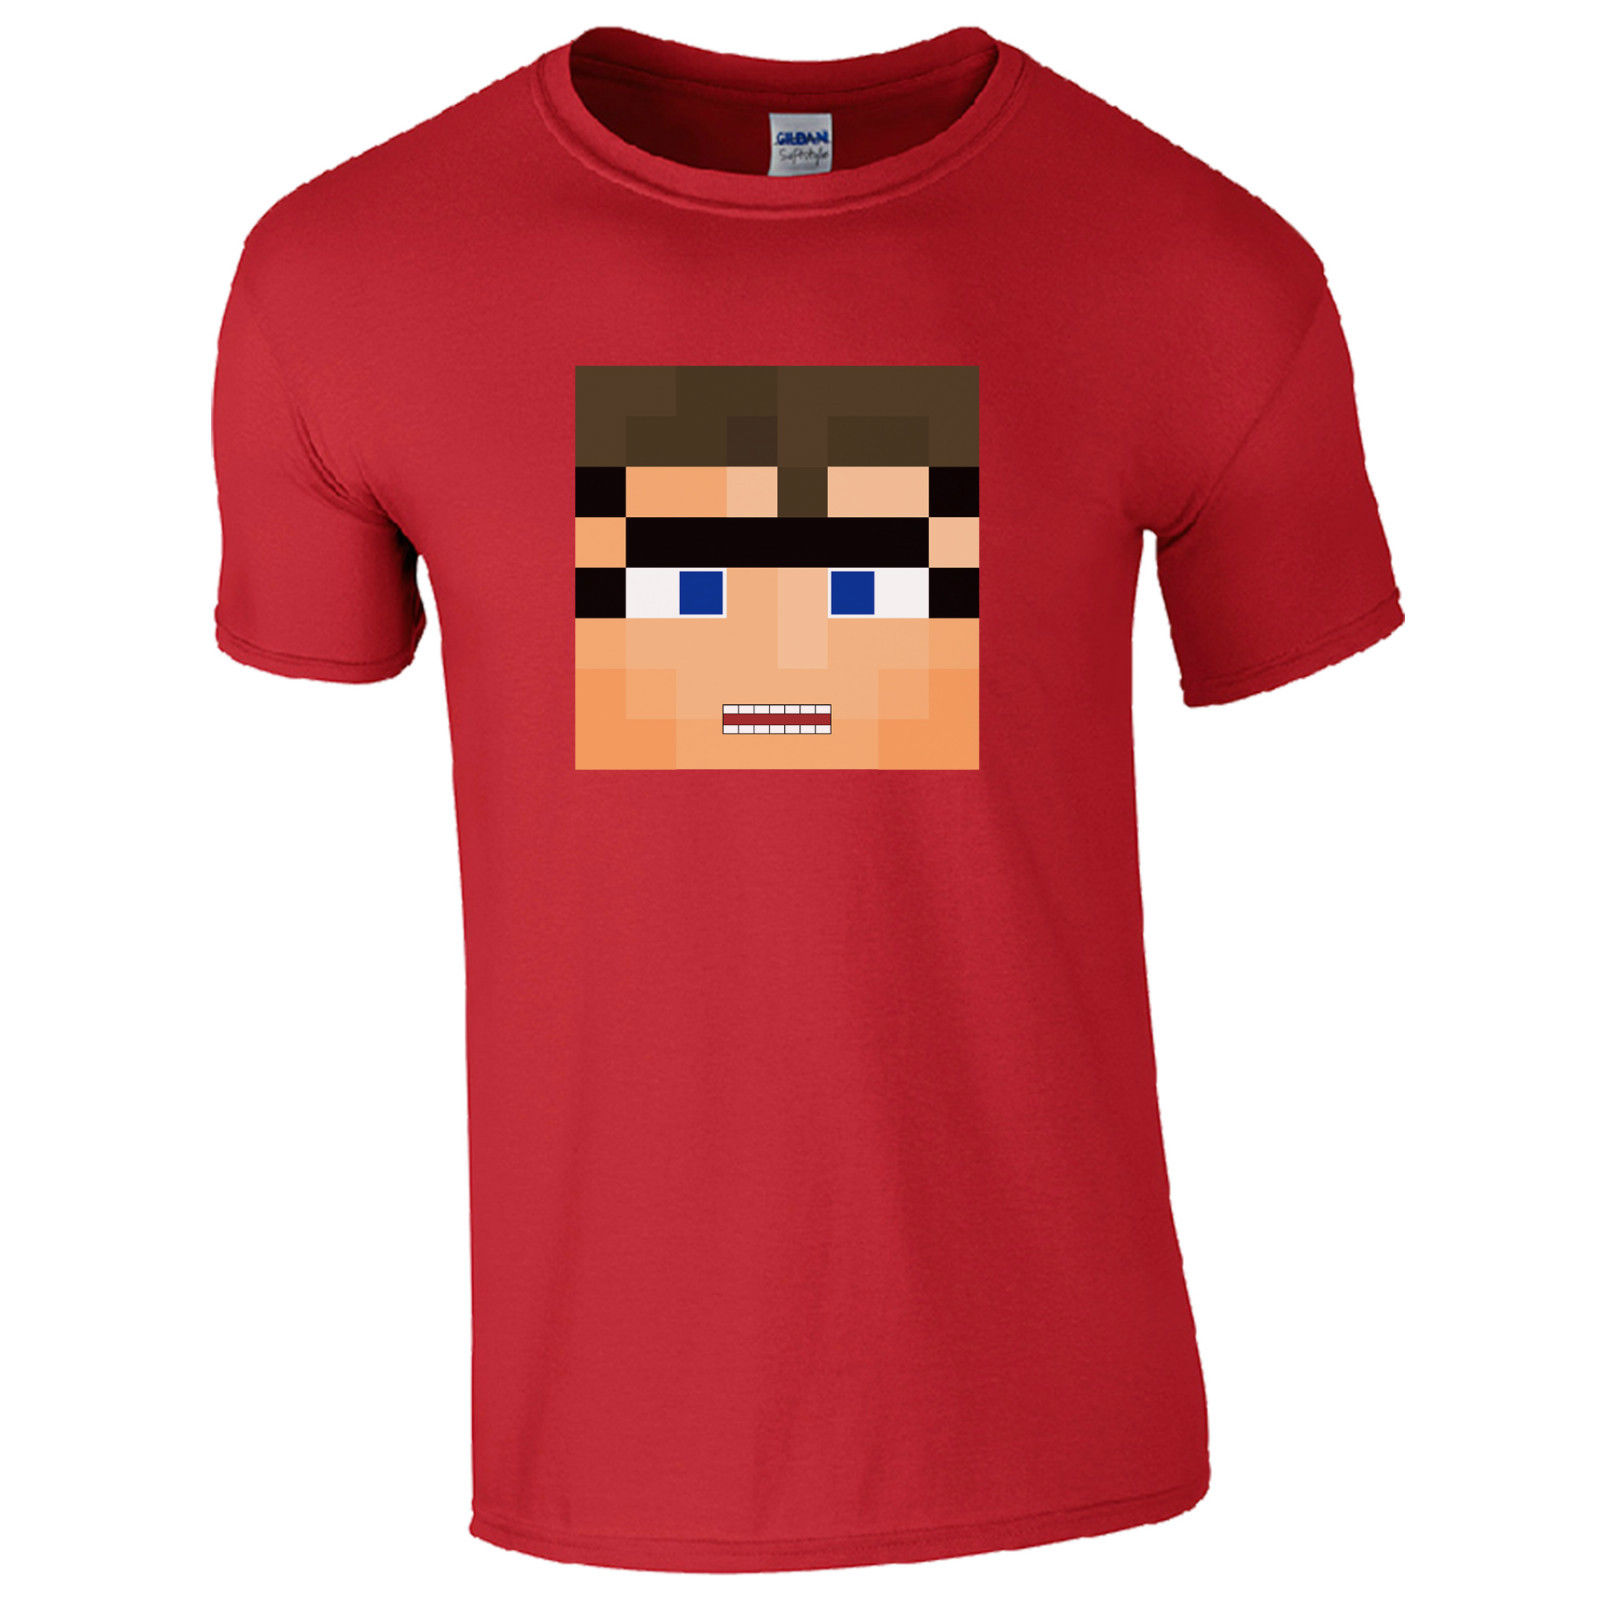 SkyDoes T-Shirt - Sky Inspired Roleplay Gaming YouTube Kids Men Gamers Gift Top Short Sleeve Round Neck T Shirt Promotion